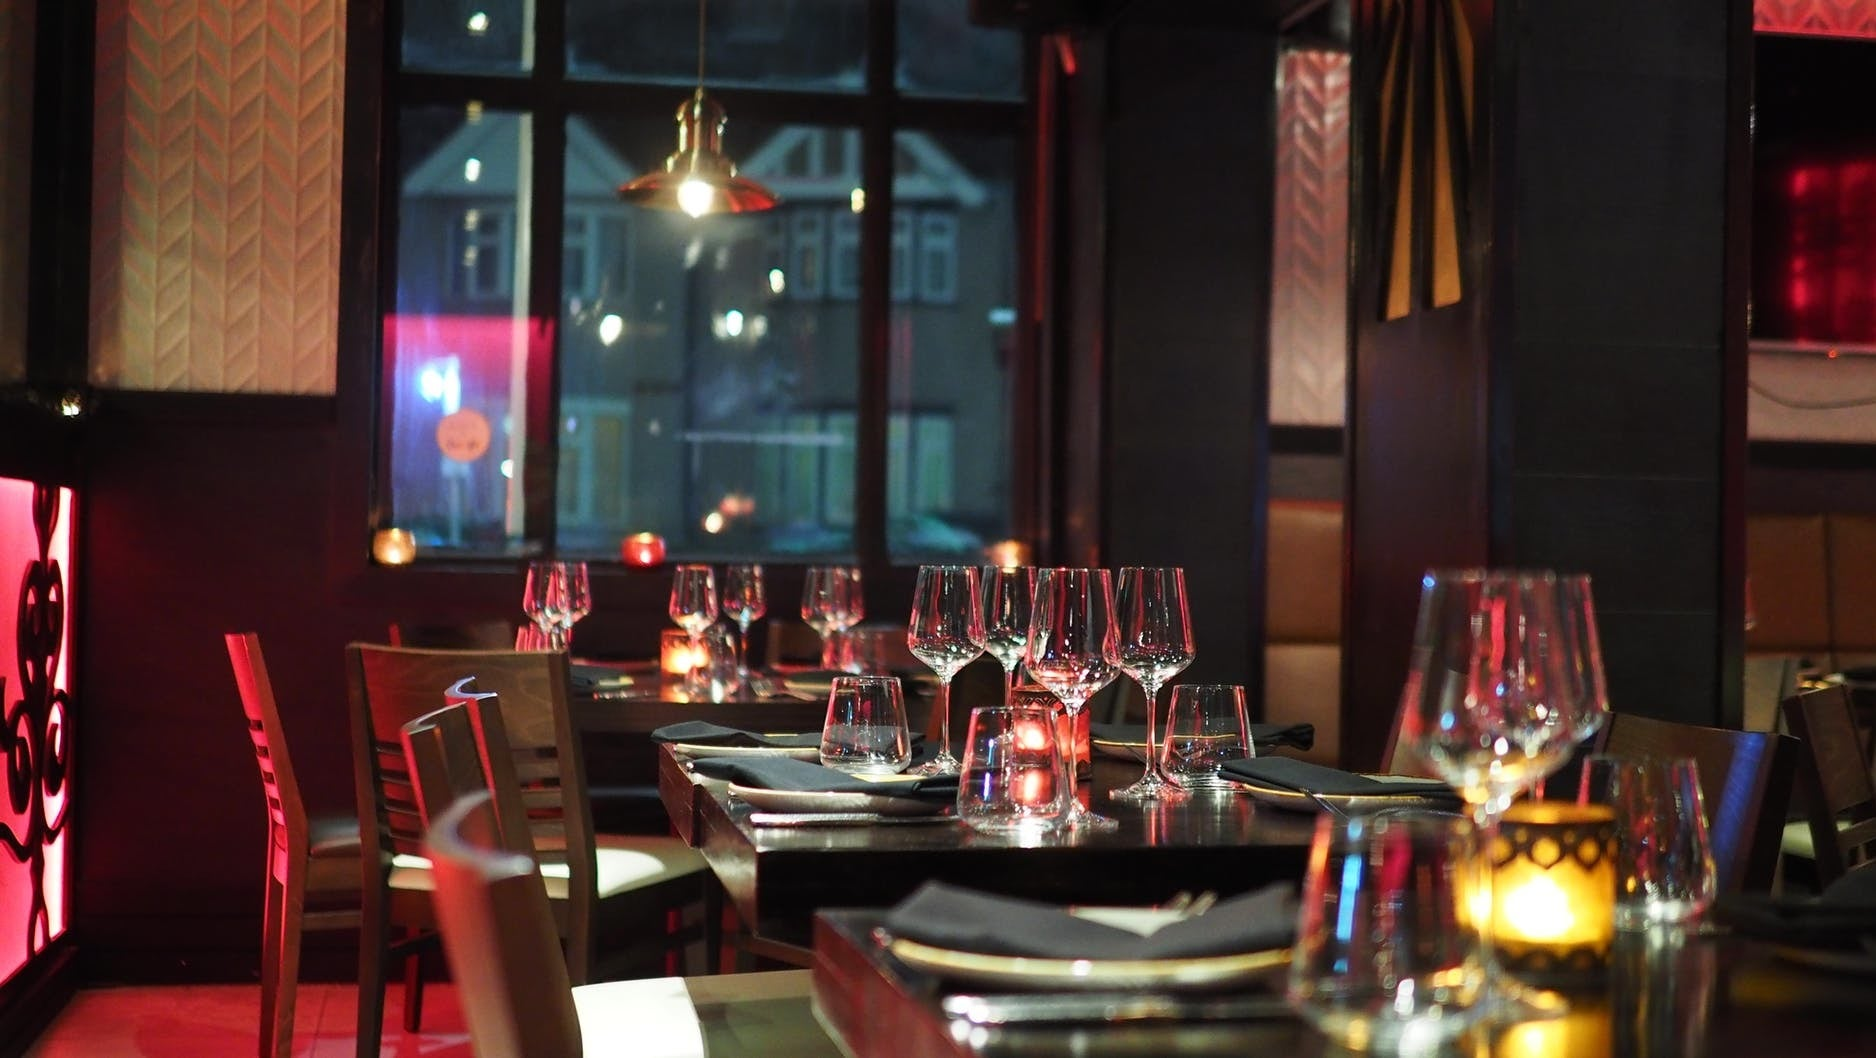 How To Request A Particular Table When Making An OpenTable Reservation